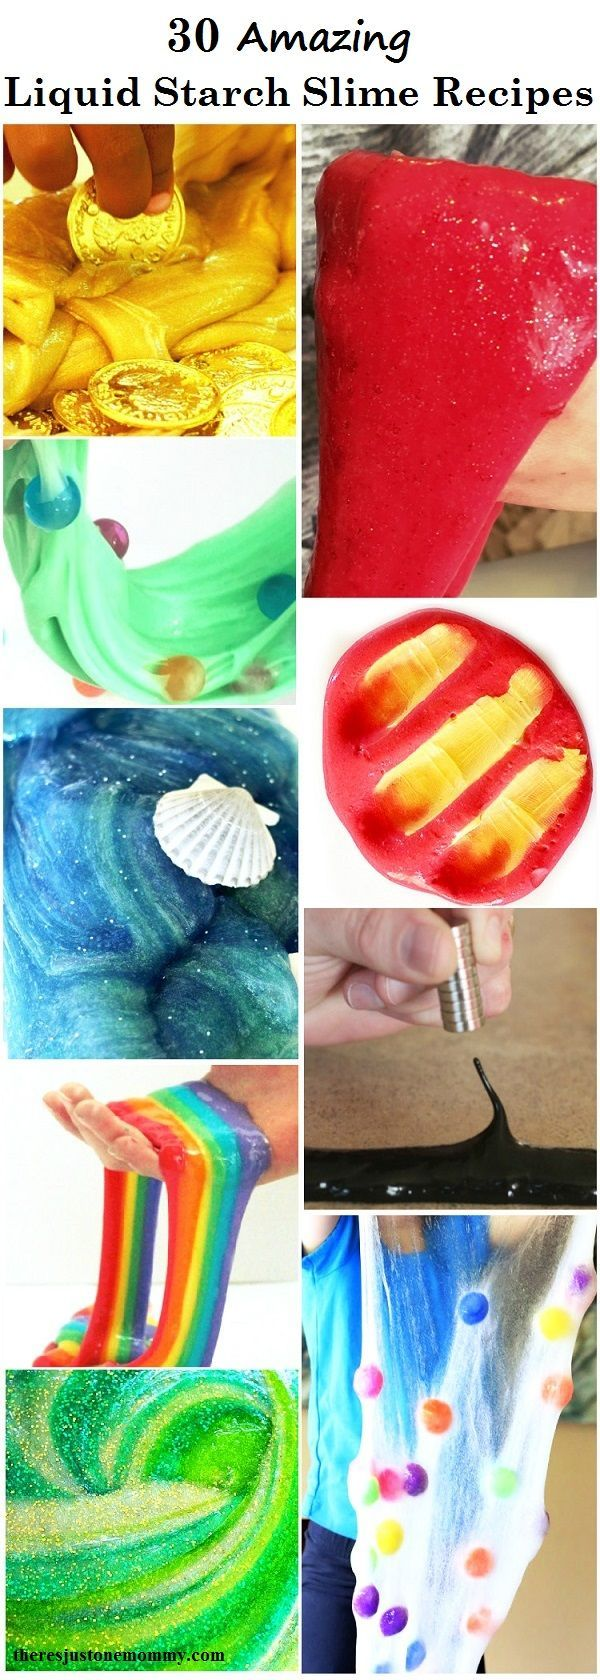 liquid starch slime recipes: 30 amazing liquid starch slimes you don't want to miss; find out how to make slime with starch and glue